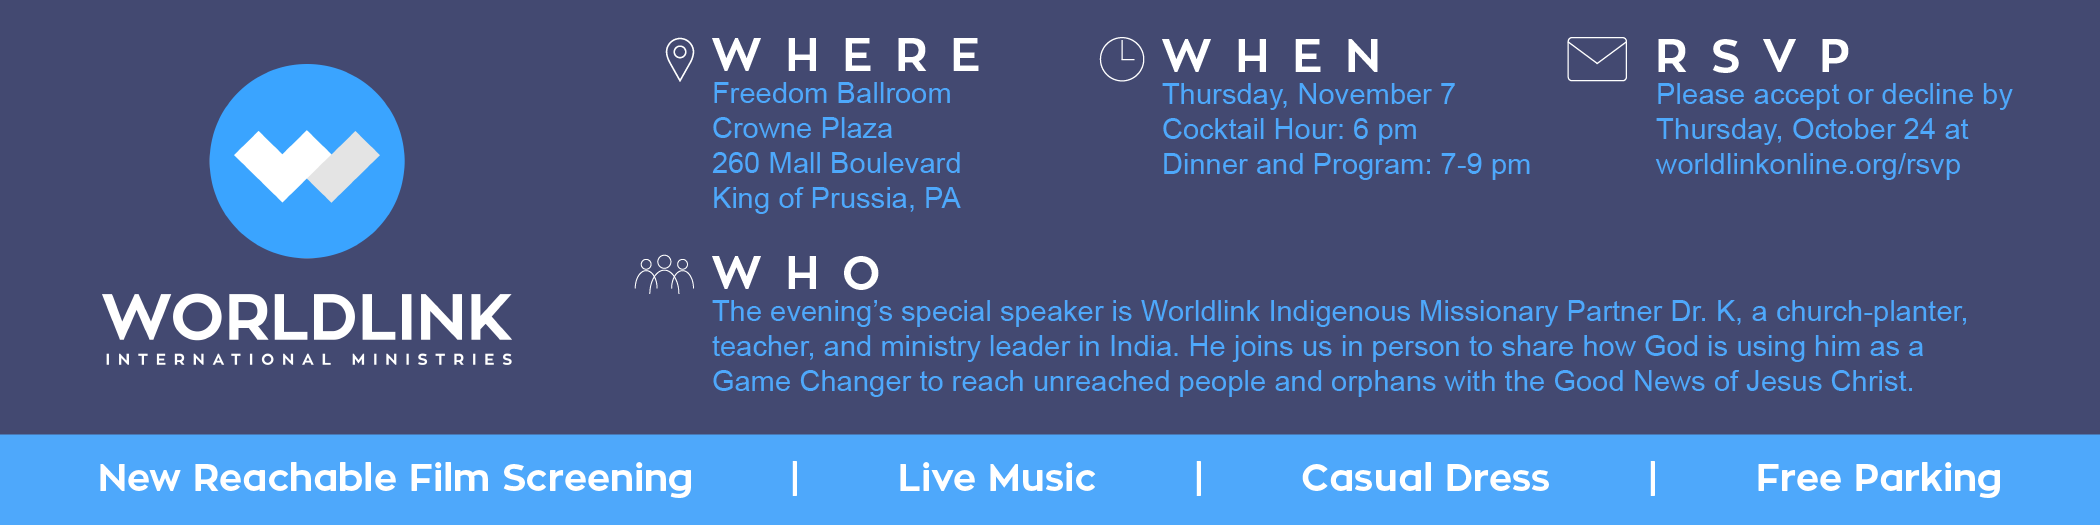 Game Changers Invitation 2019_Website Info Banner.png